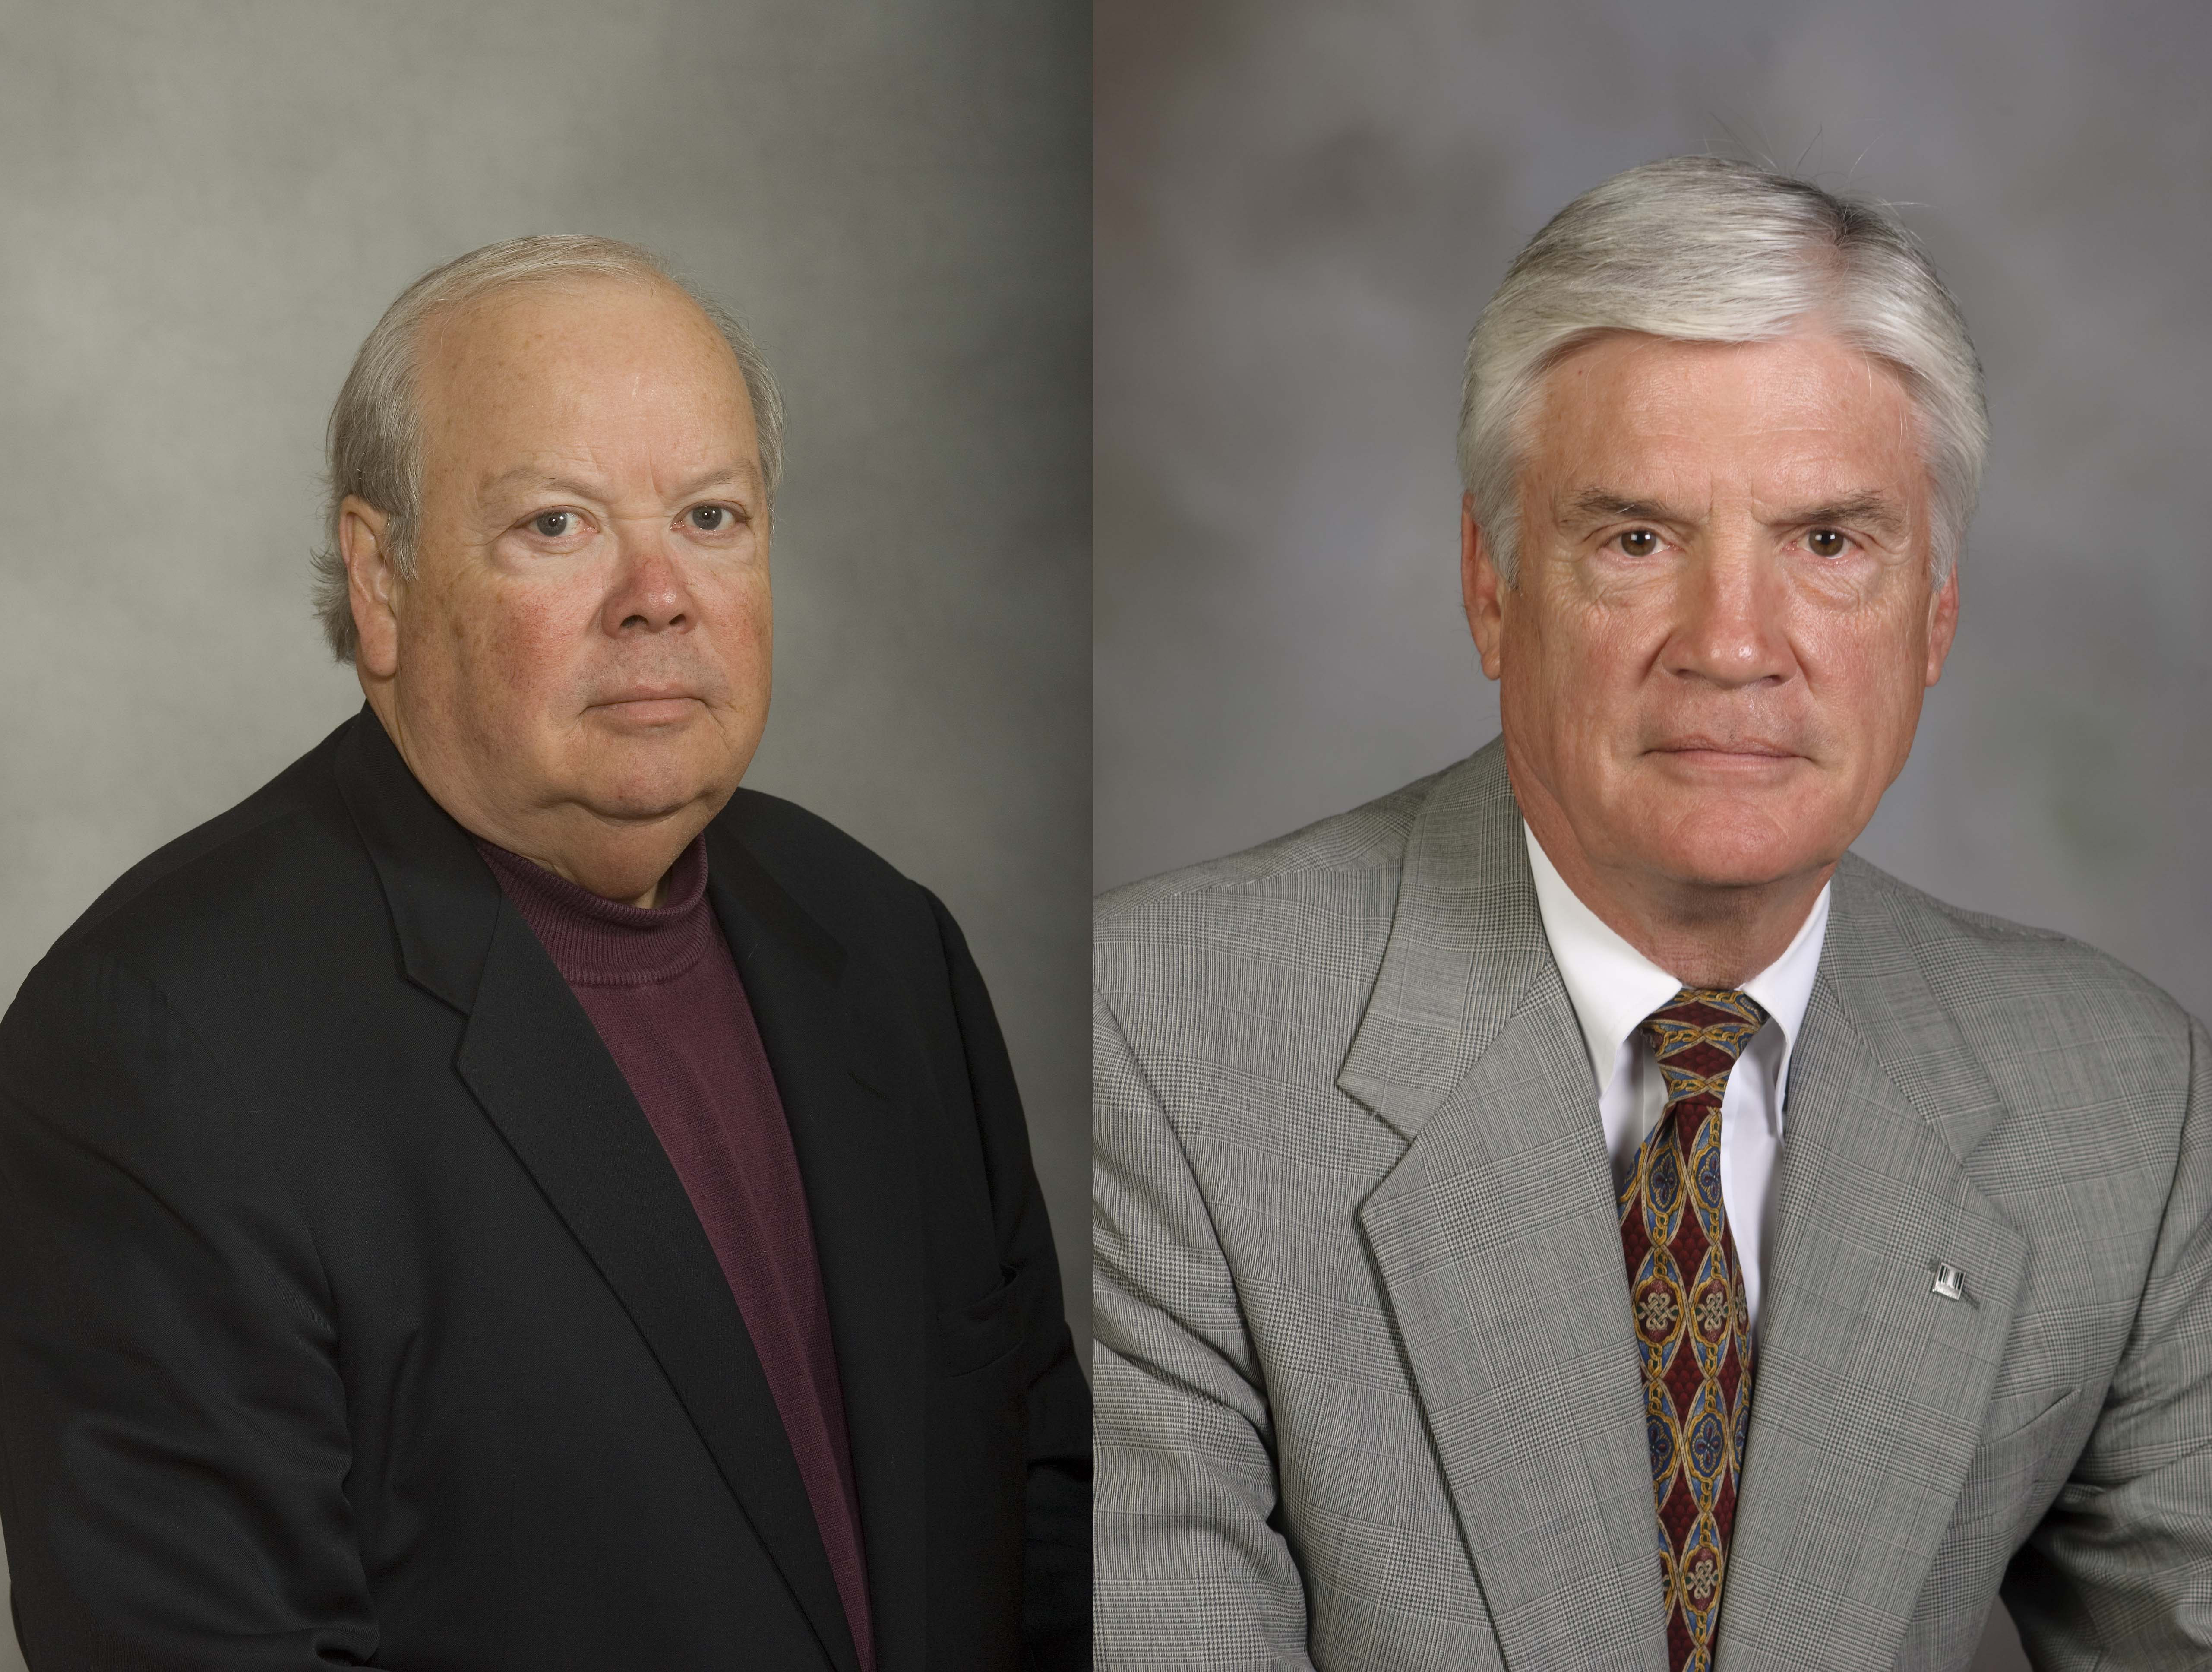 Photograph of Virginia Tech alumni Ben J. Davenport Jr. and David E. Lowe